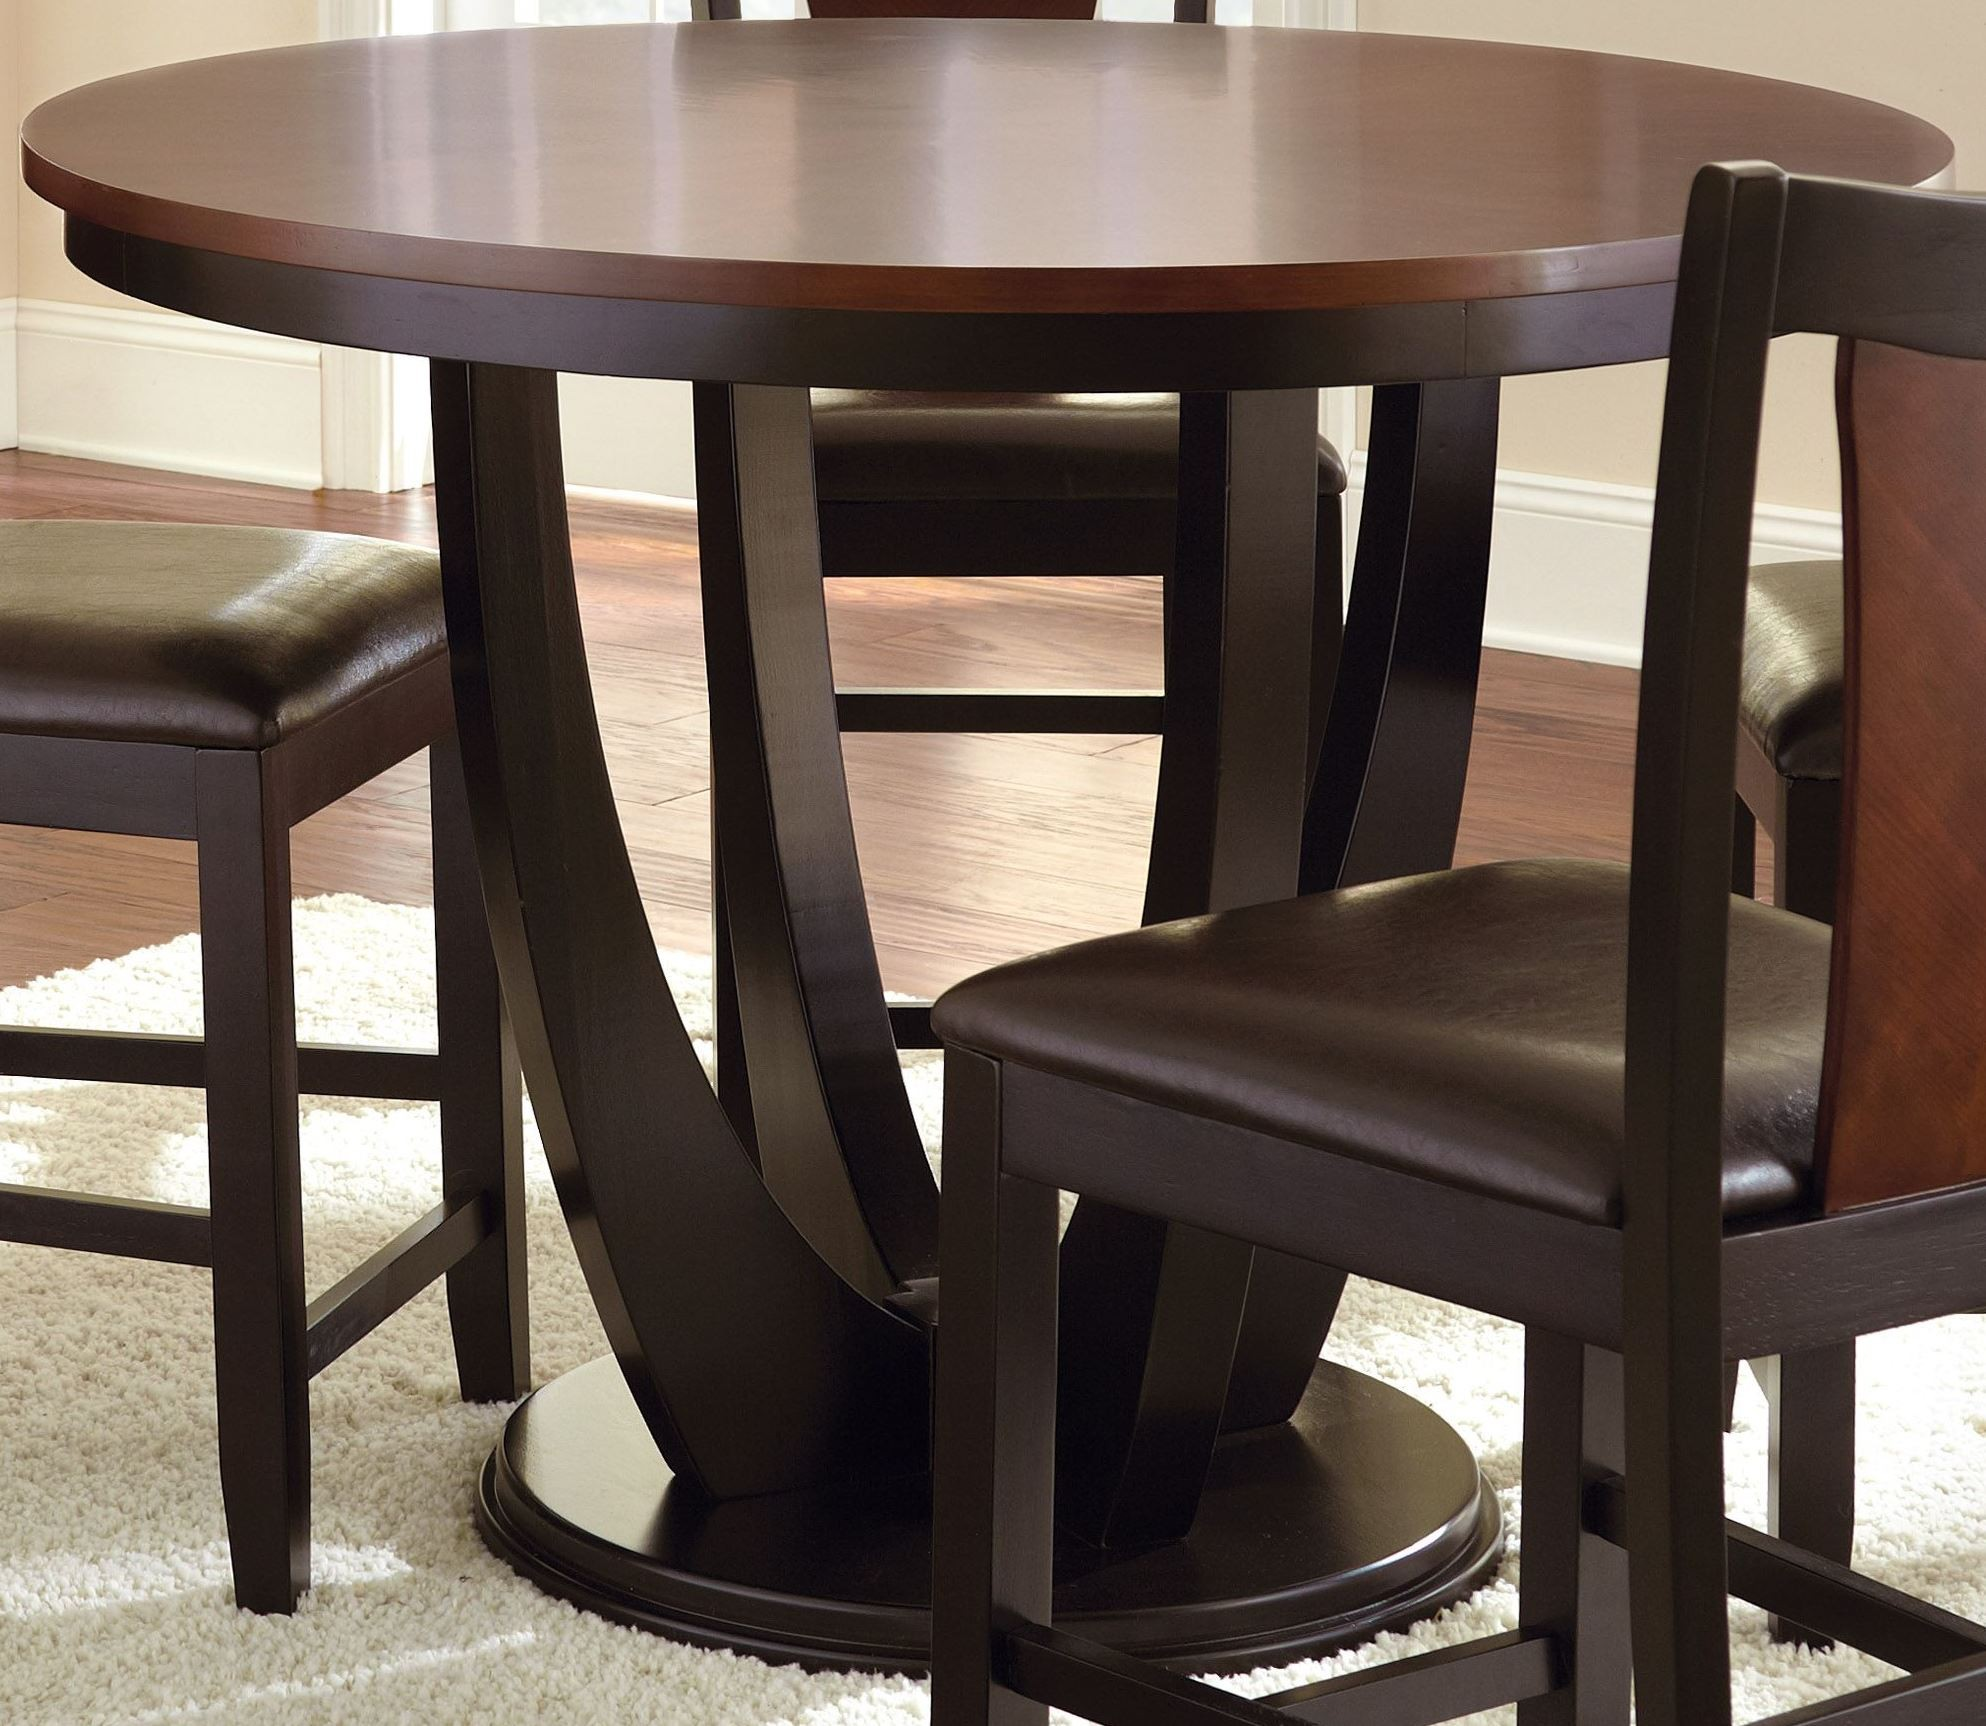 oakton round counter height dining table from steve silver ok4848pb ok4848pt coleman furniture. Black Bedroom Furniture Sets. Home Design Ideas